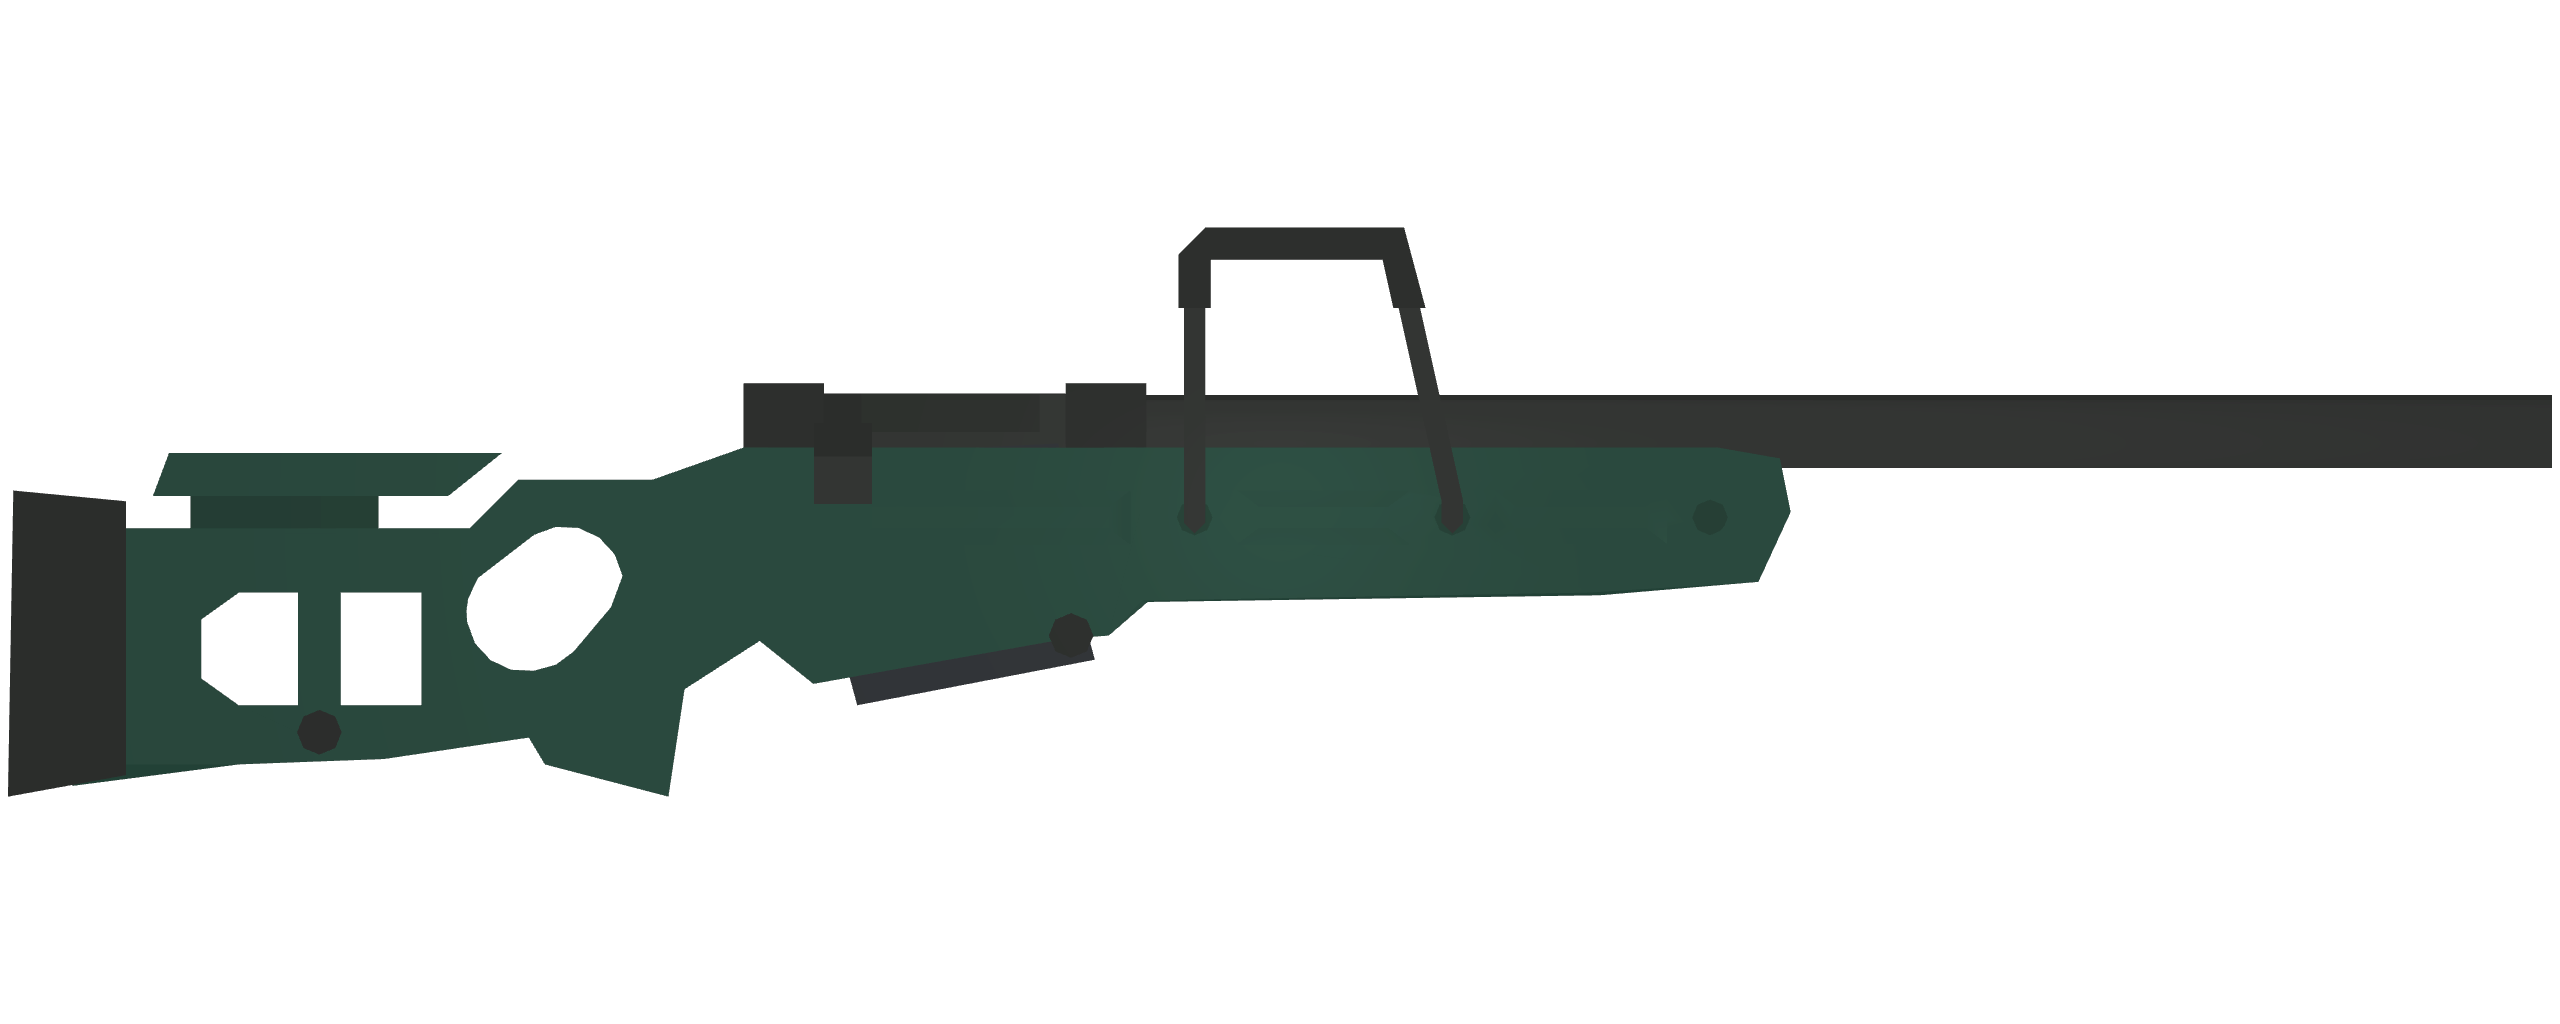 Unturned - All Weapons ID's for Uncreated Warfare Mods - Russian Weapons - 61AAD56